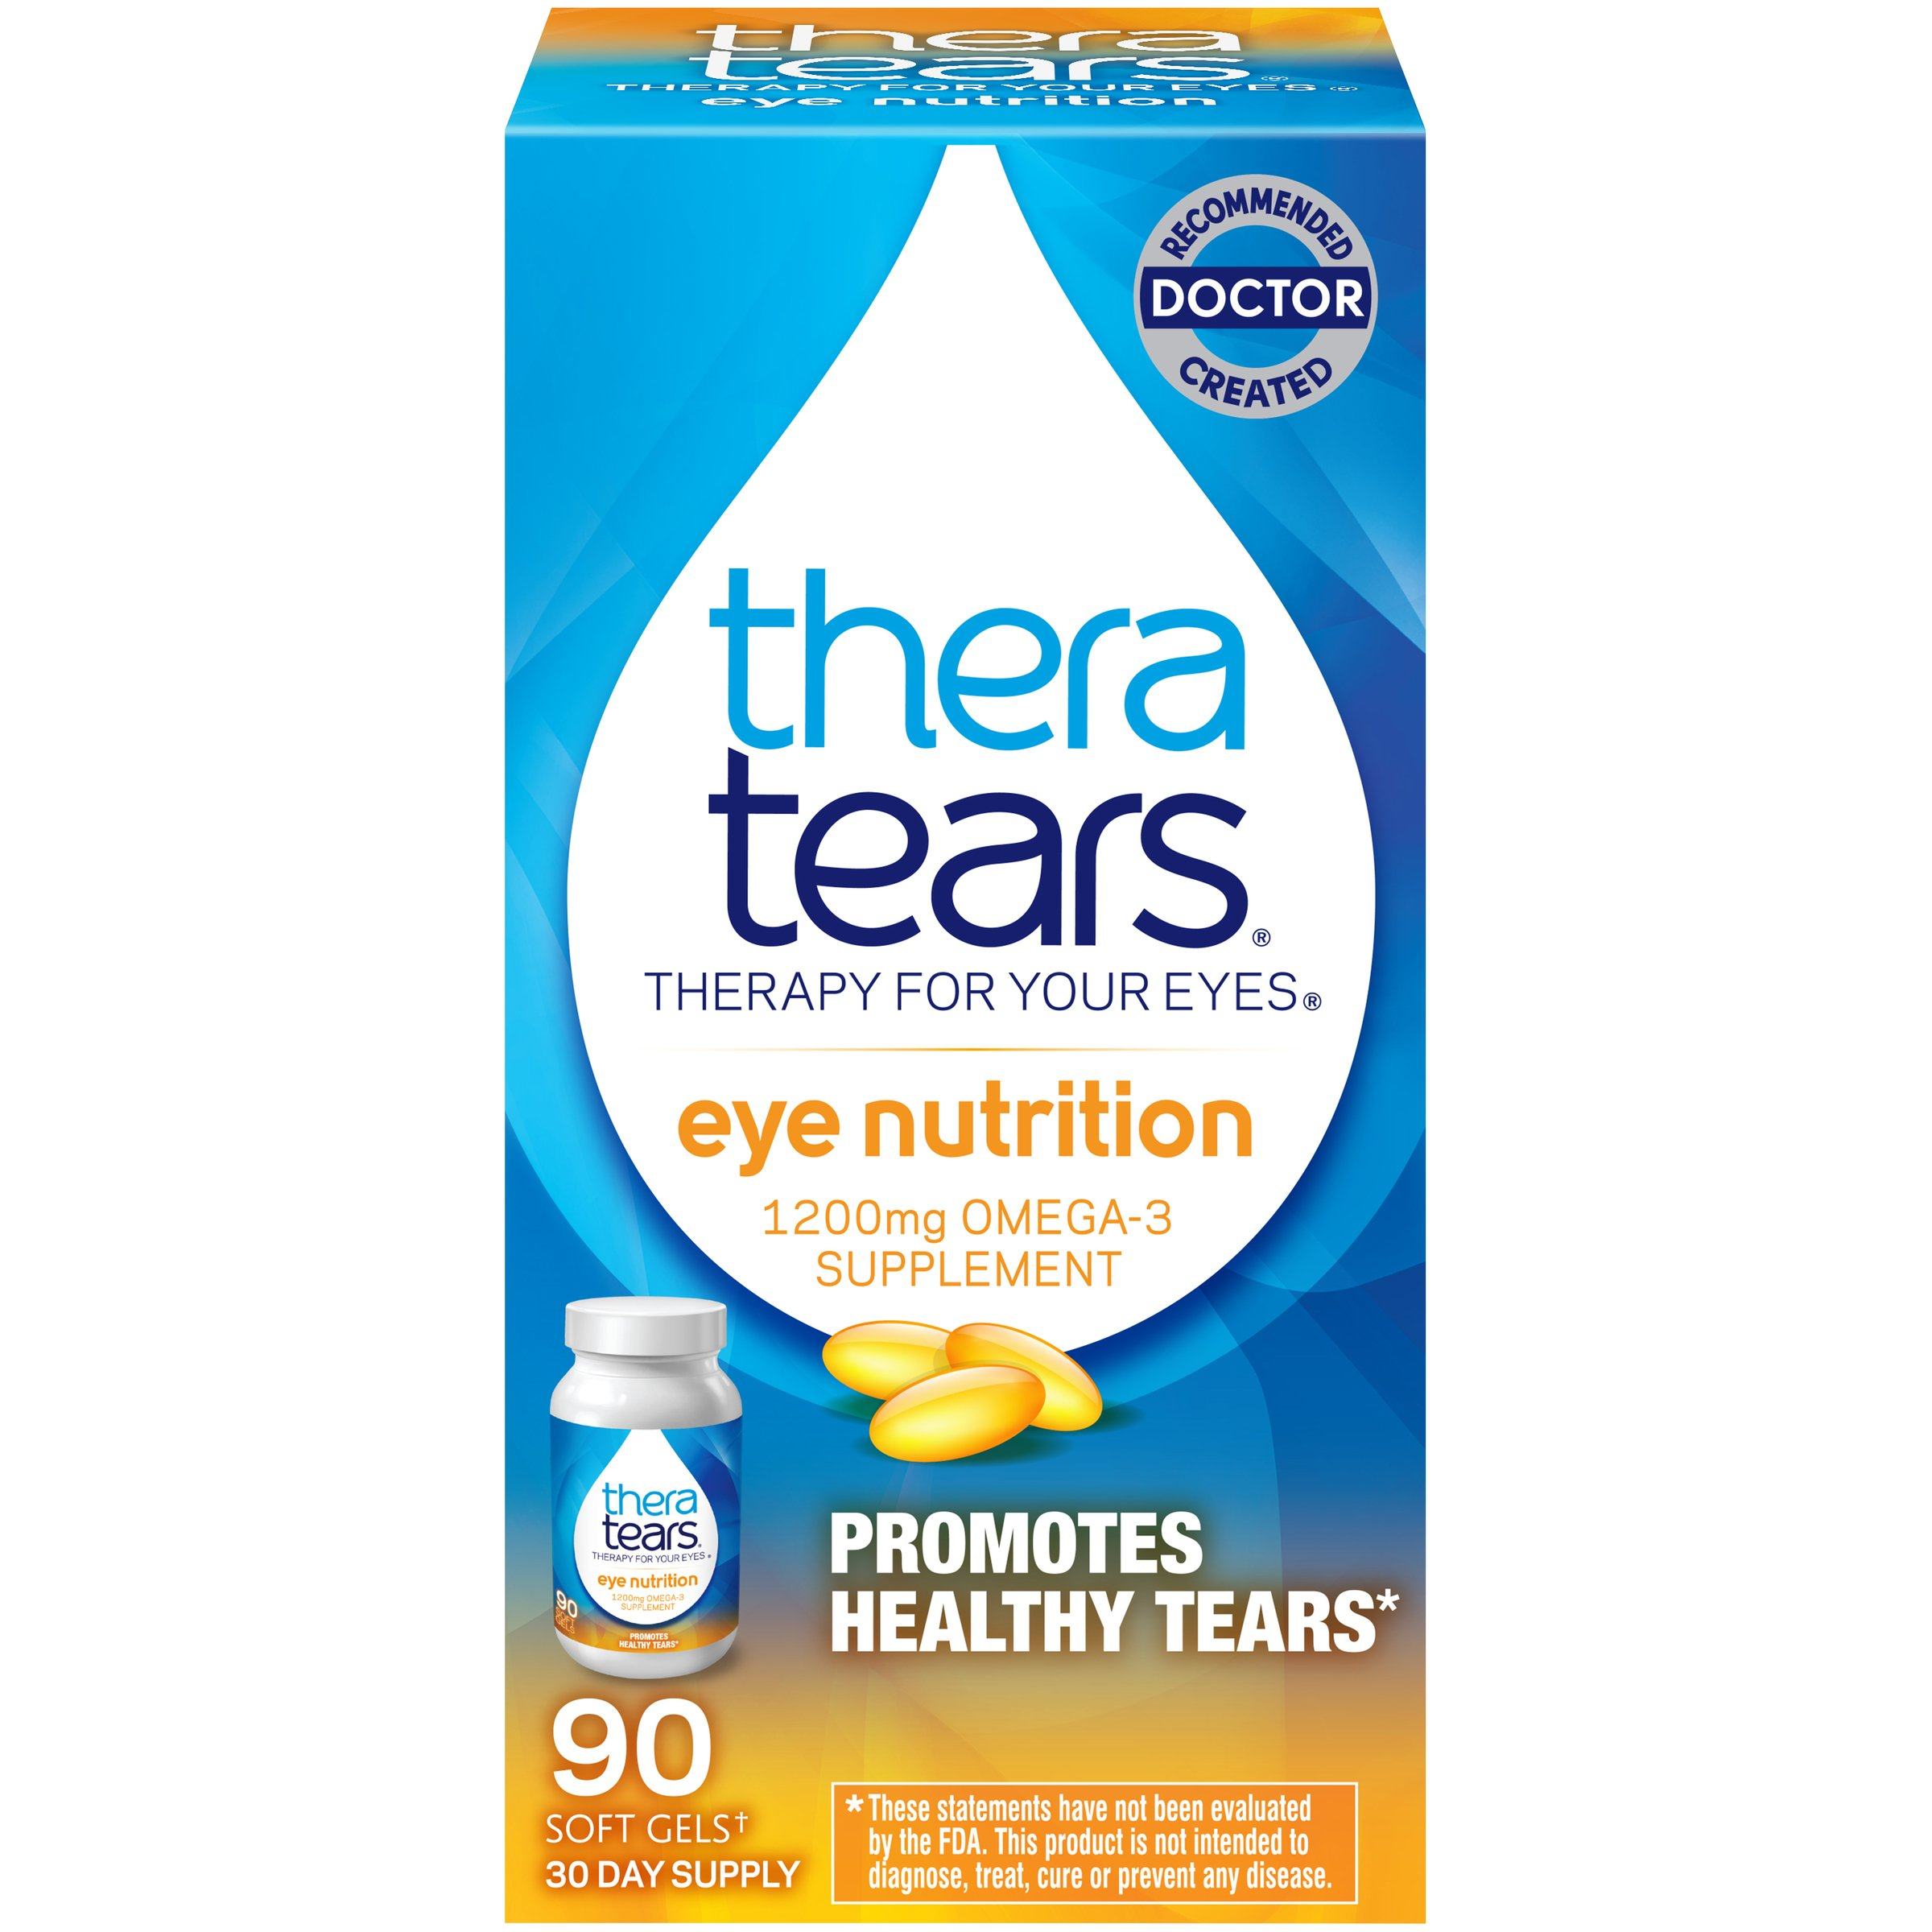 TheraTears Eye Nutrition Omega 3 Supplements, Organic Flaxseed Triglyceride Fish Oil and Vitamin E, 90 Soft Gel Capsules